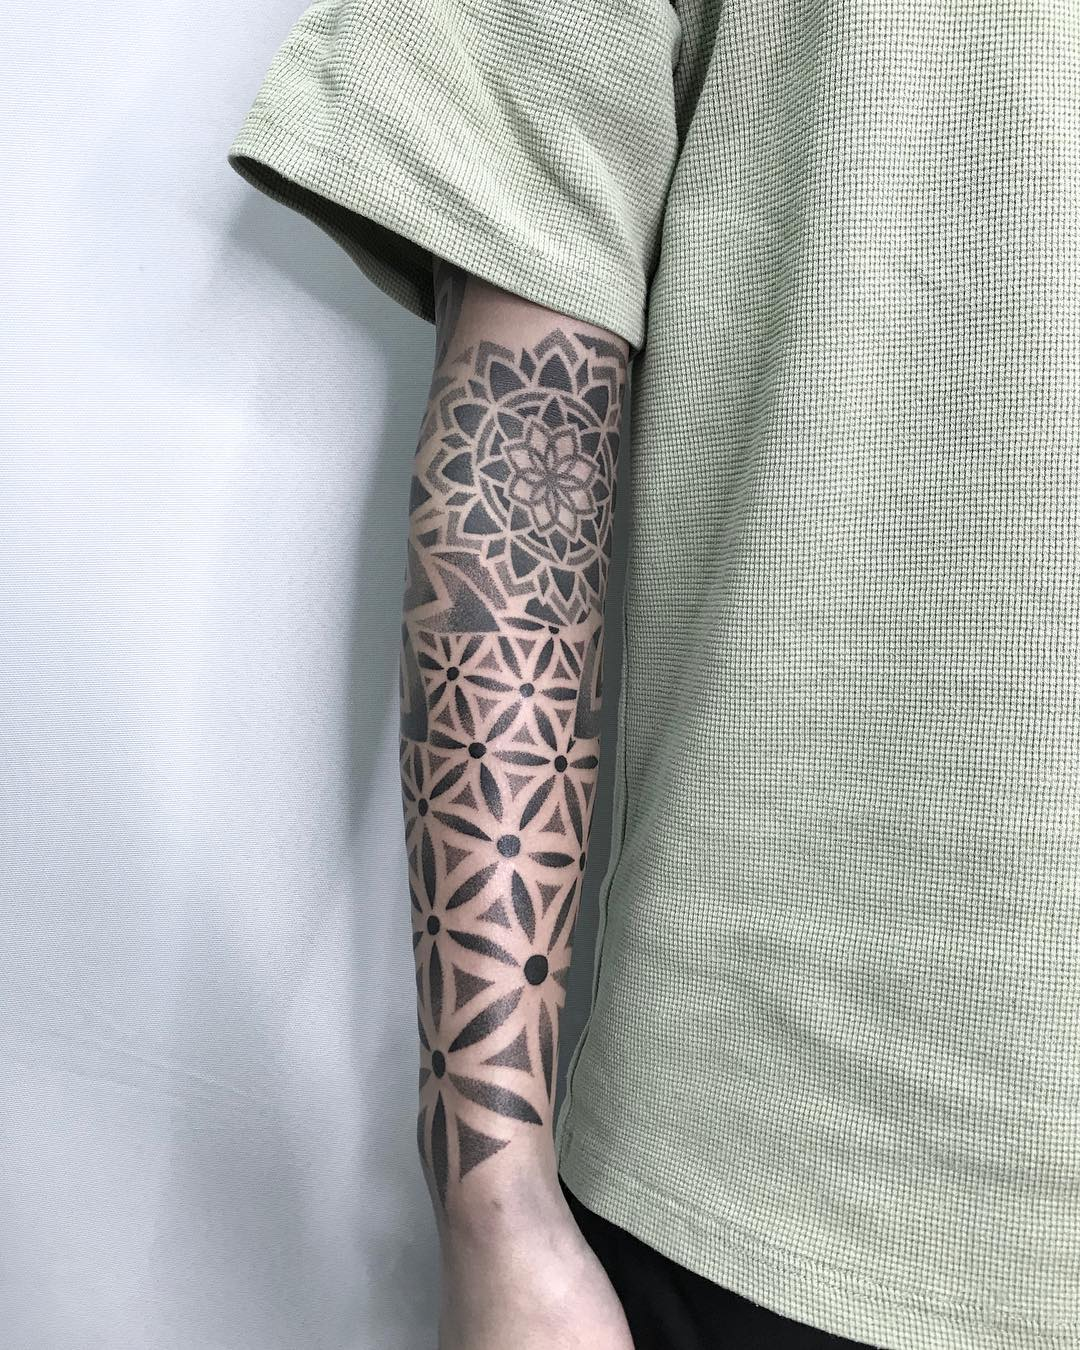 tattoo mandala by @tomm_li